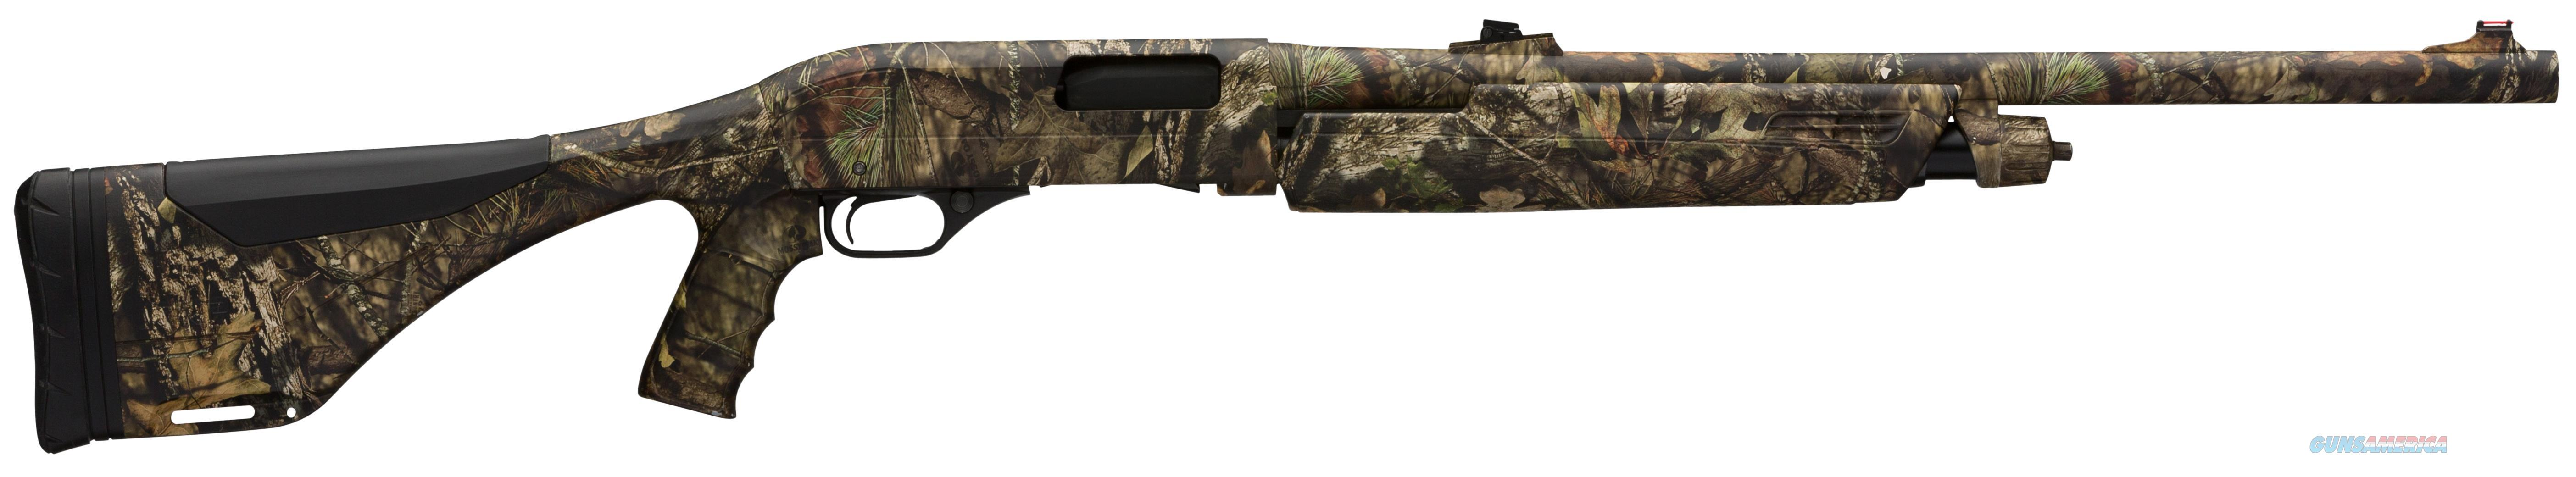 "Winchester Guns 512313240 Sxp Pump 12 Gauge 22"" 3"" Mossy Oak Break-Up Country Synthetic Stk Aluminum Rcvr 512313240  Guns > Shotguns > W Misc Shotguns"